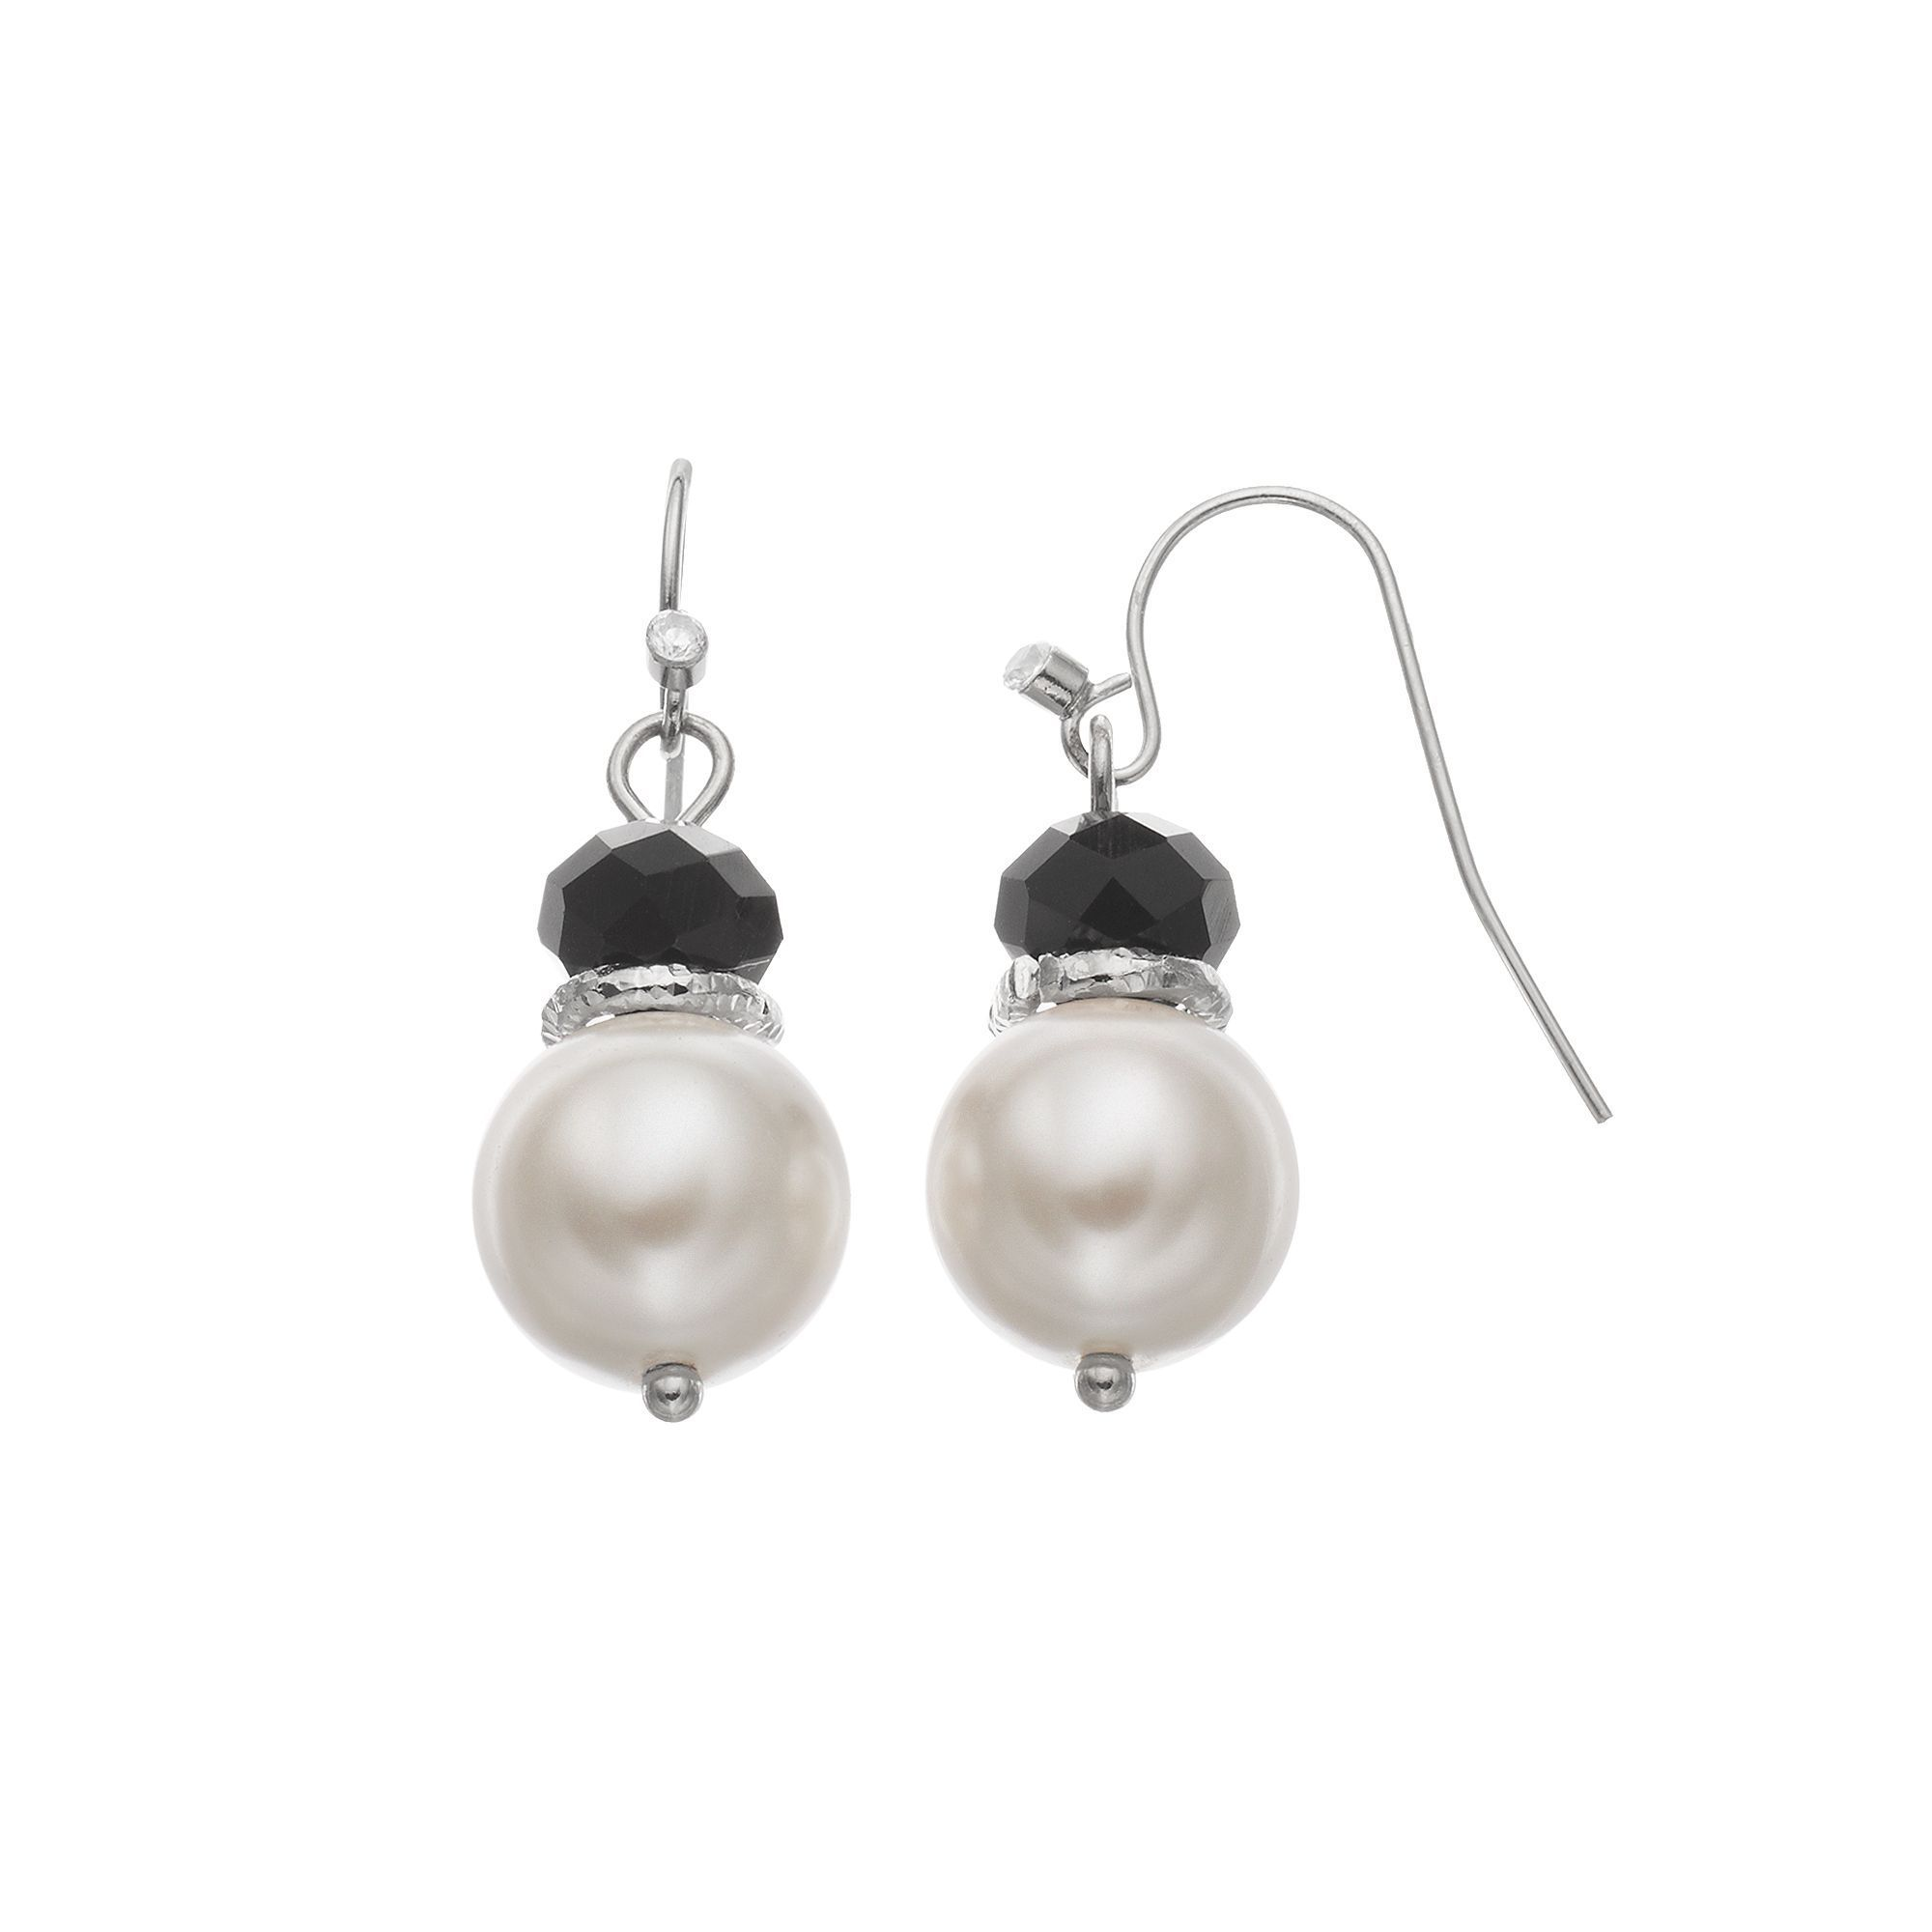 in on shipping mm sterling product overstock over three watches set pearl of gemstone multicolor drop earrings silver free freshwater jewelry orders